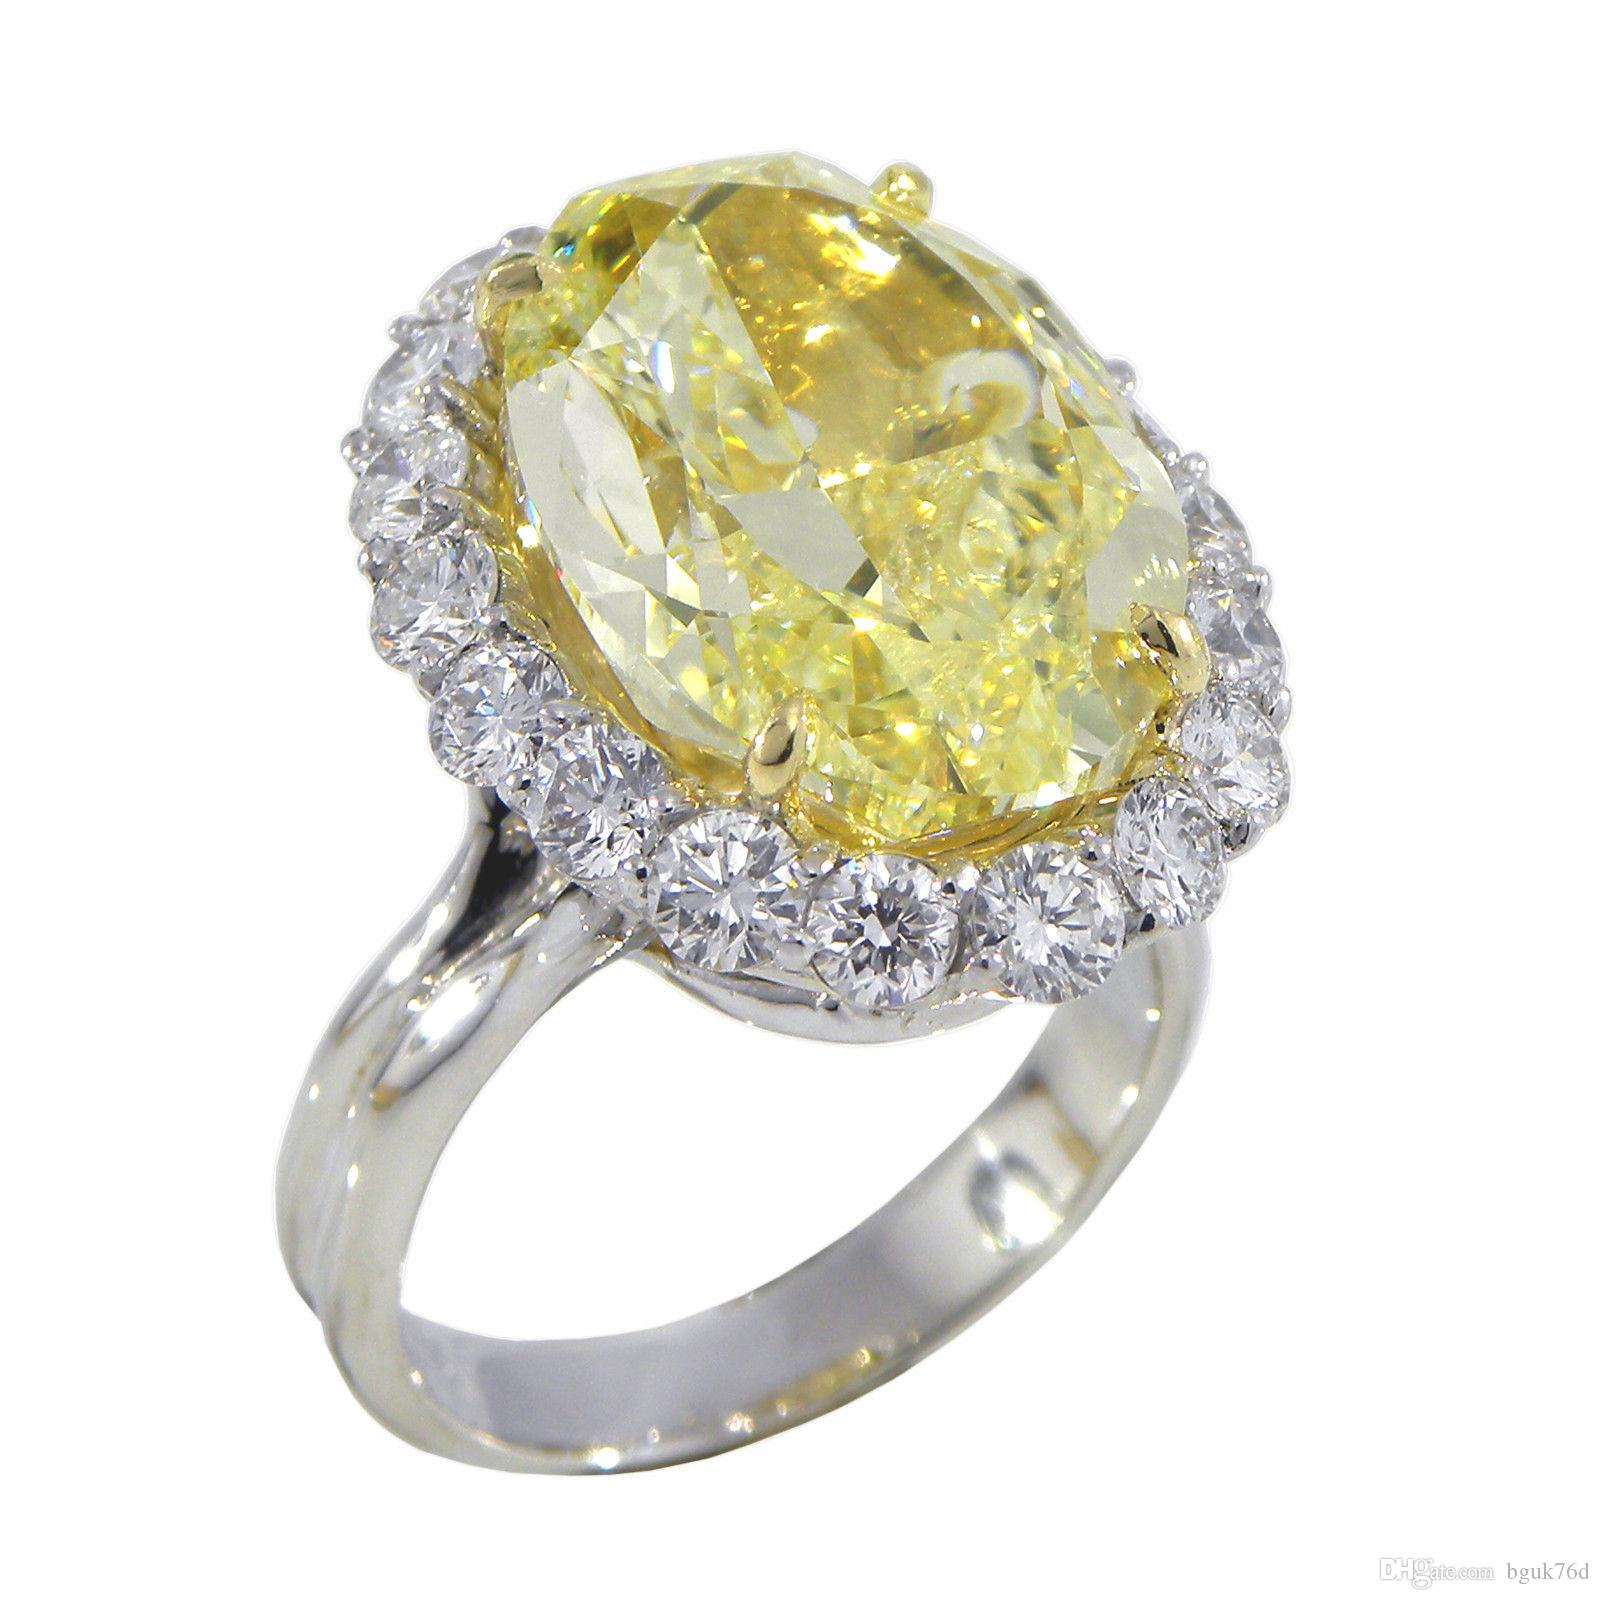 eco radiant rings ring canary yellow diamond simulant engagement with first moon watch